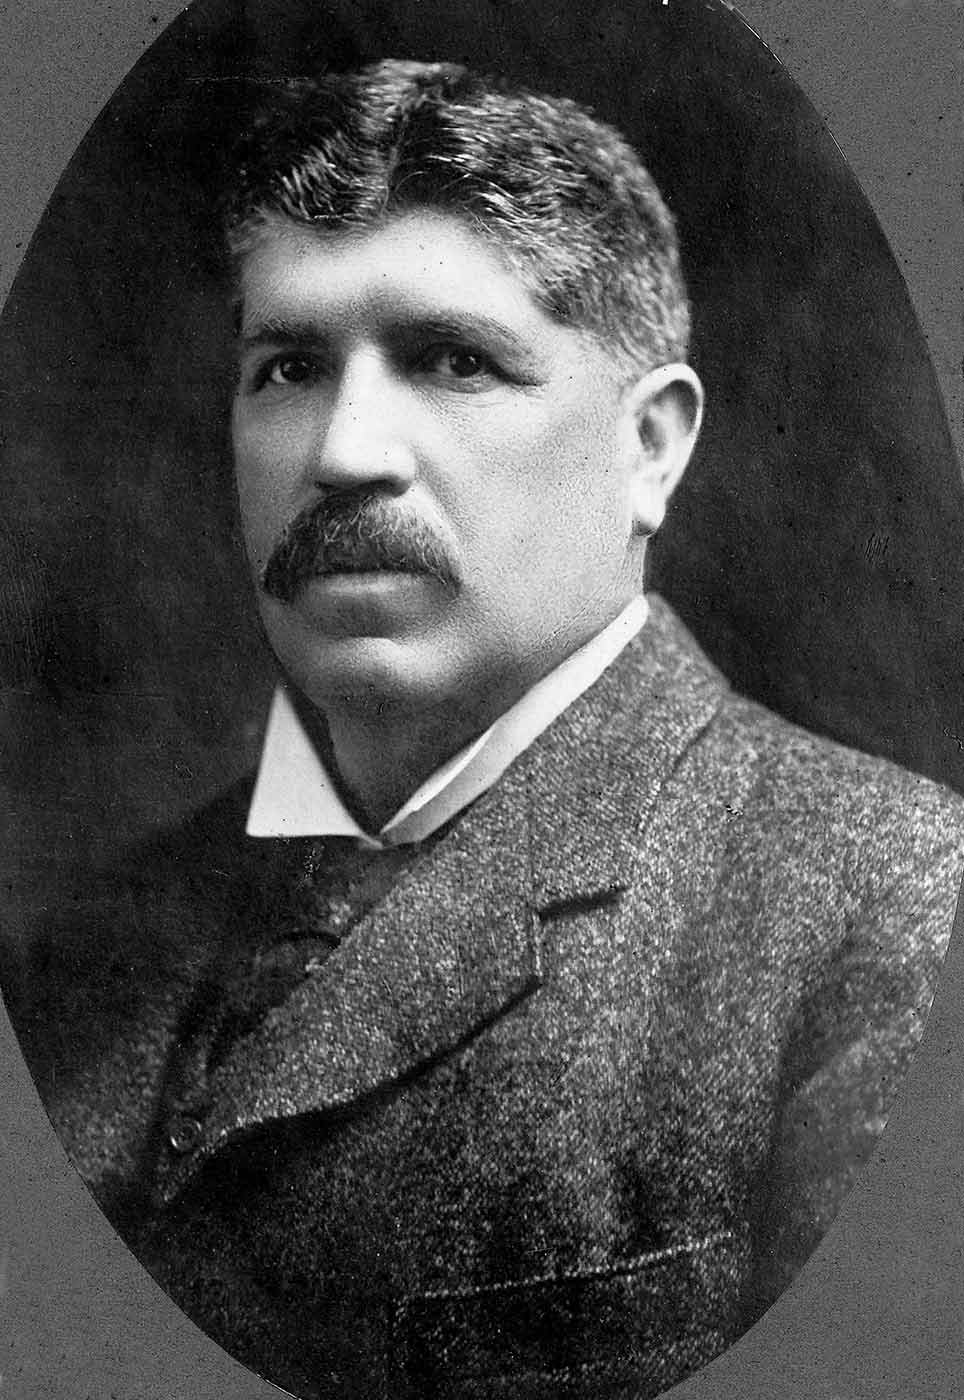 Black and white portrait of a man with a moustache and wearing a wool suit jacket and tie. - click to view larger image